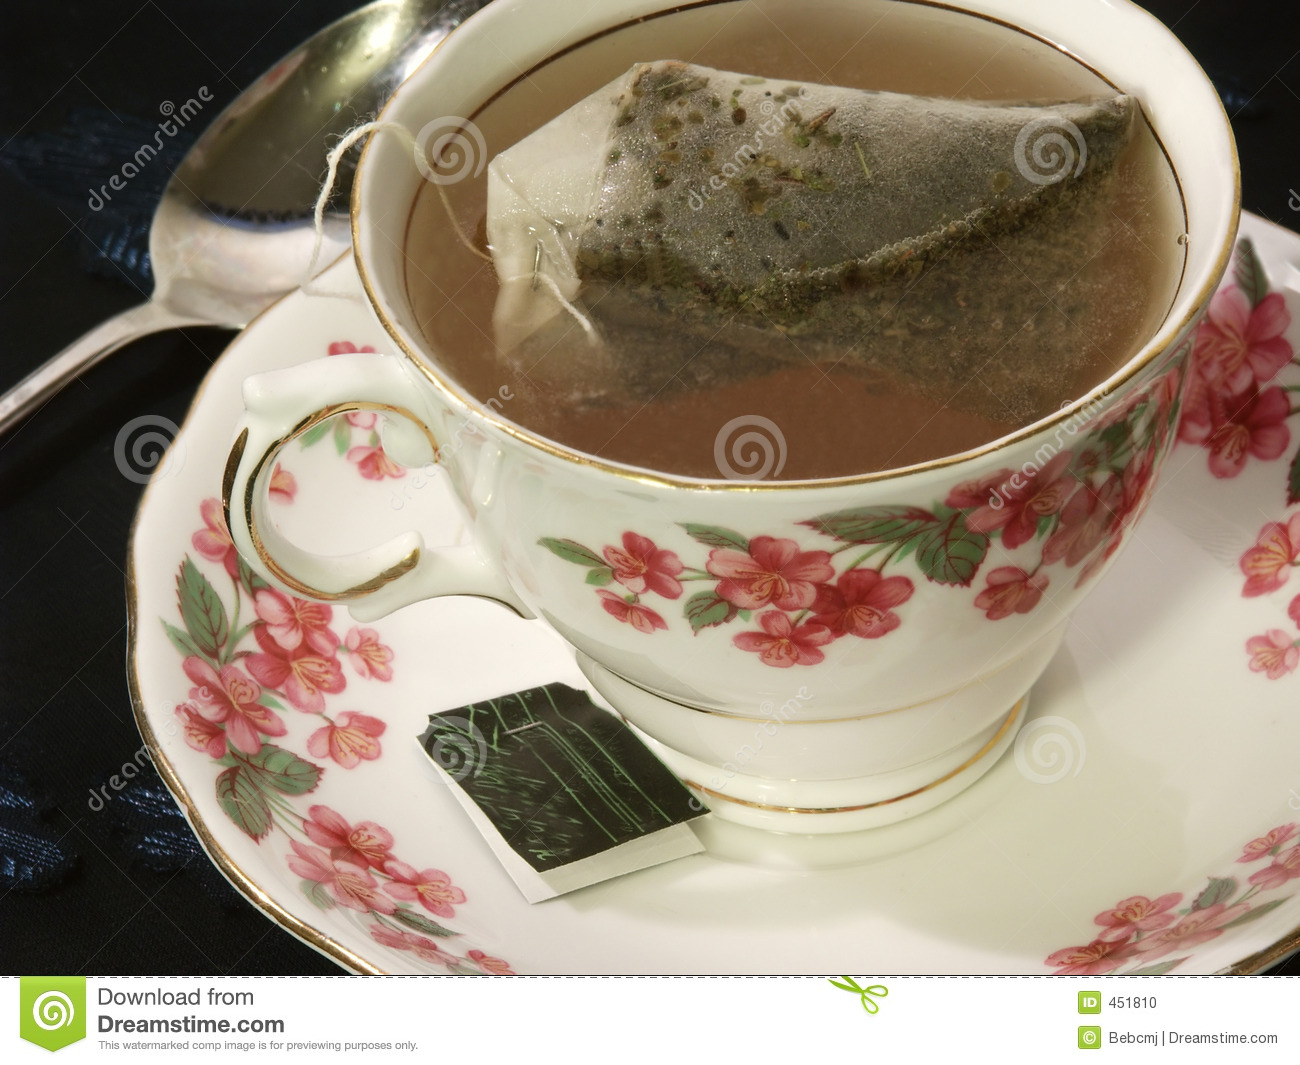 Steep tea bags